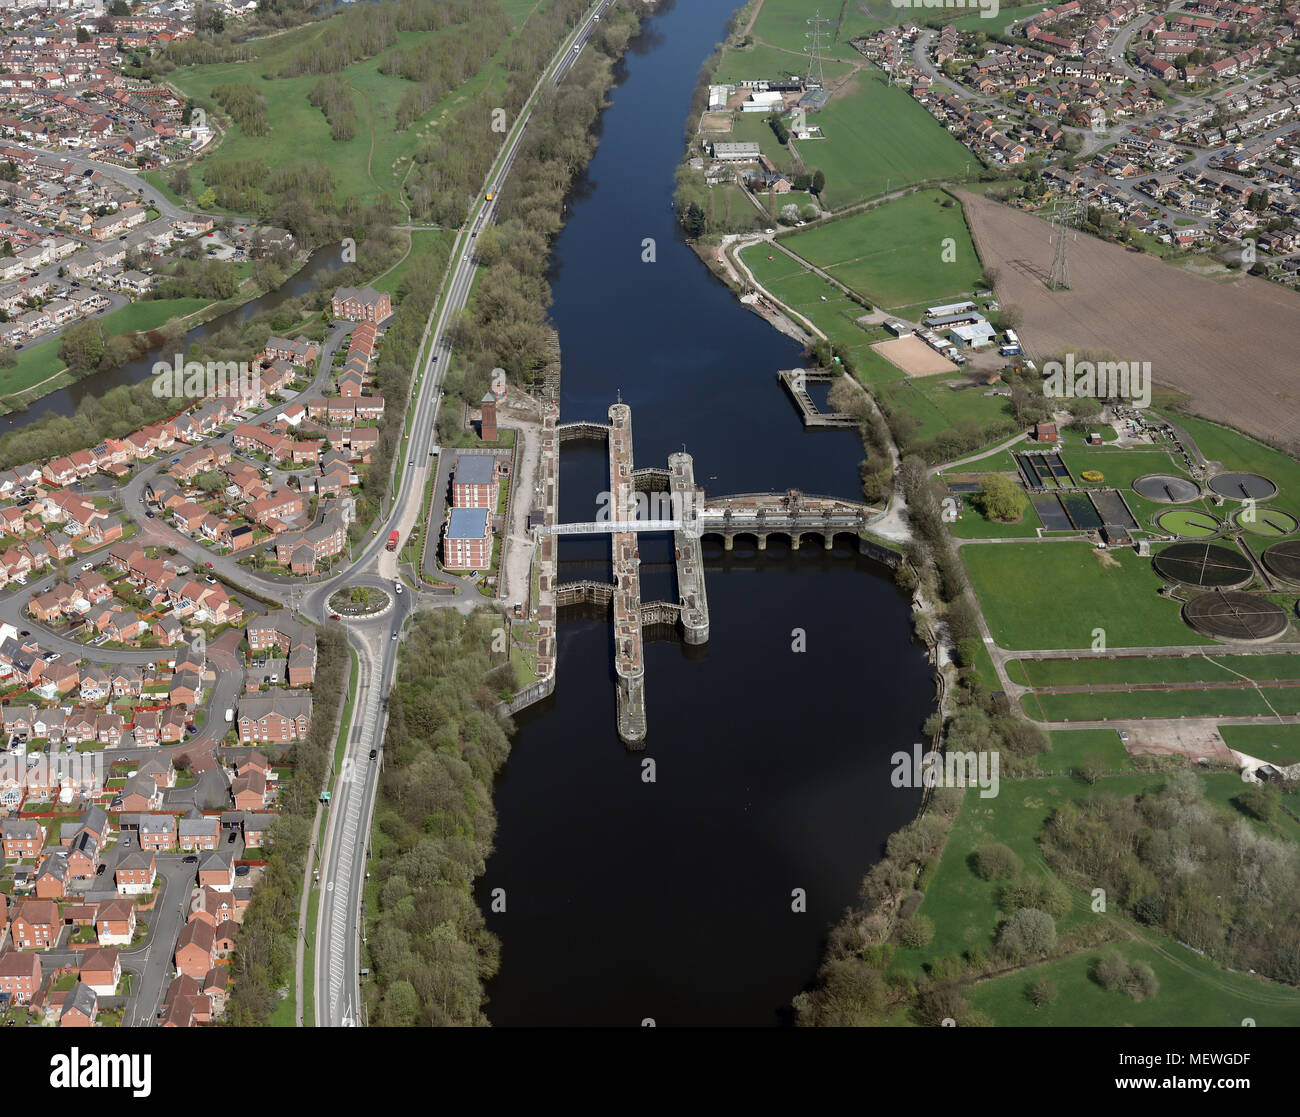 aerial view looking east up The Manchester Ship Canal at Irlam near Manchester, UK - Stock Image